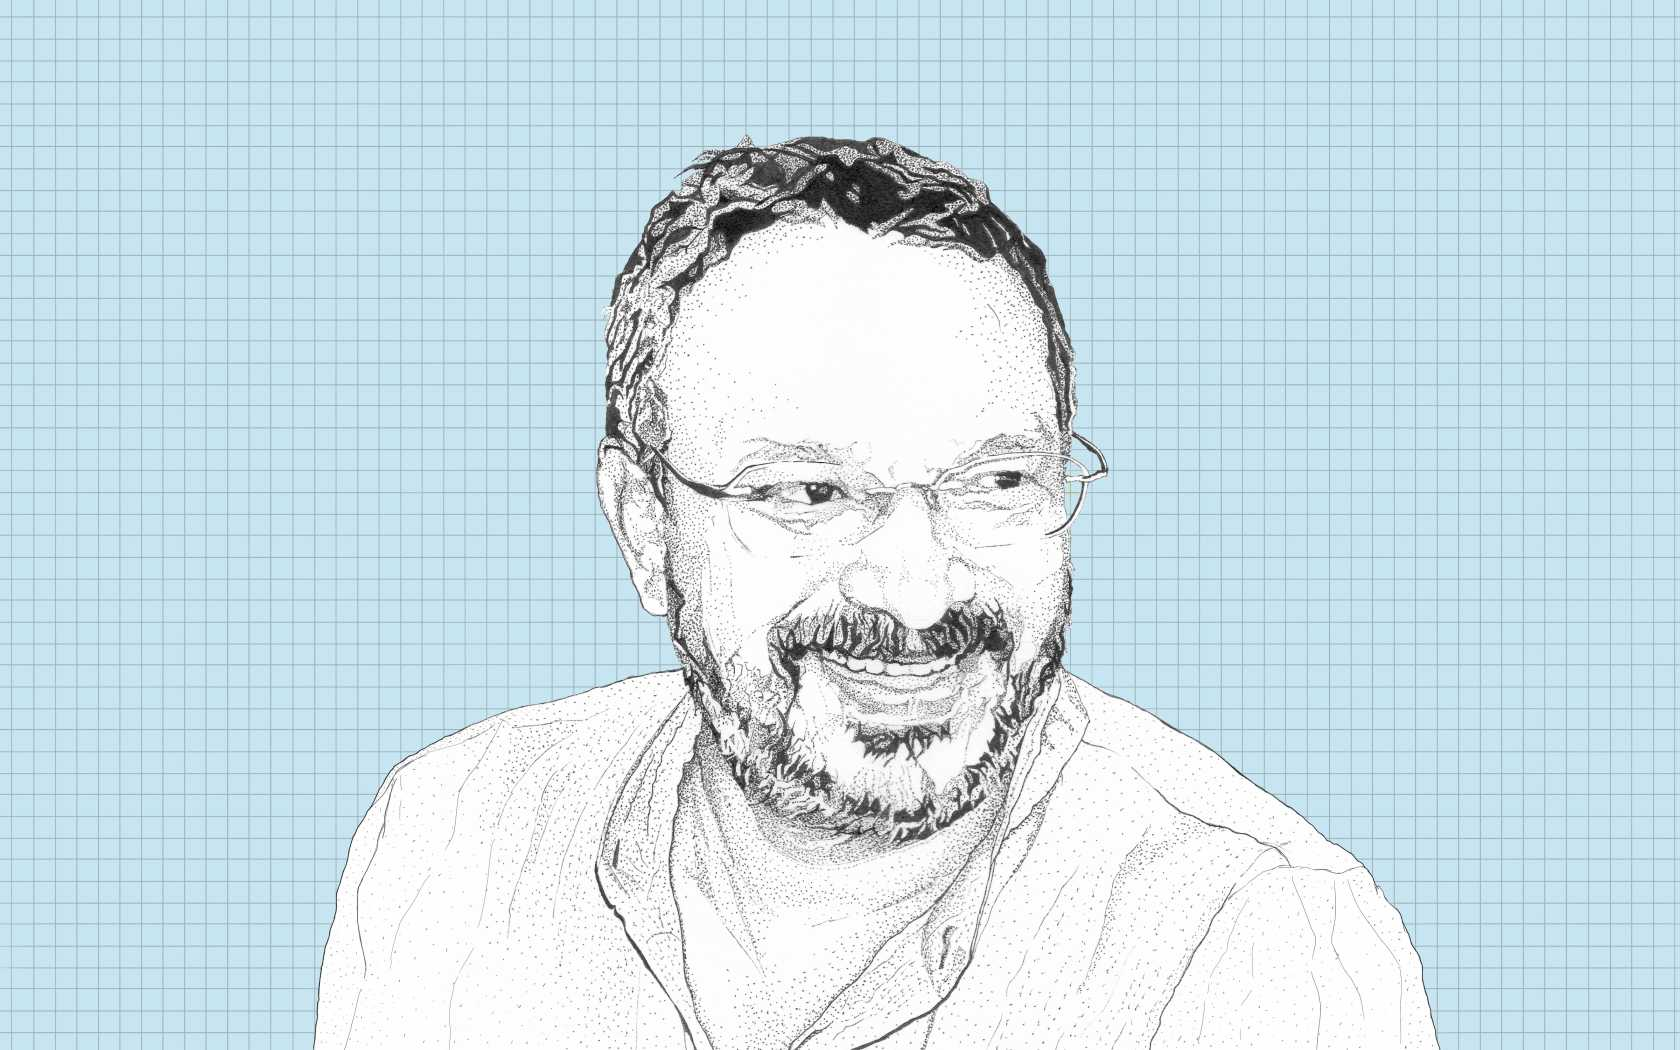 illustration-bezwada wilson-profile